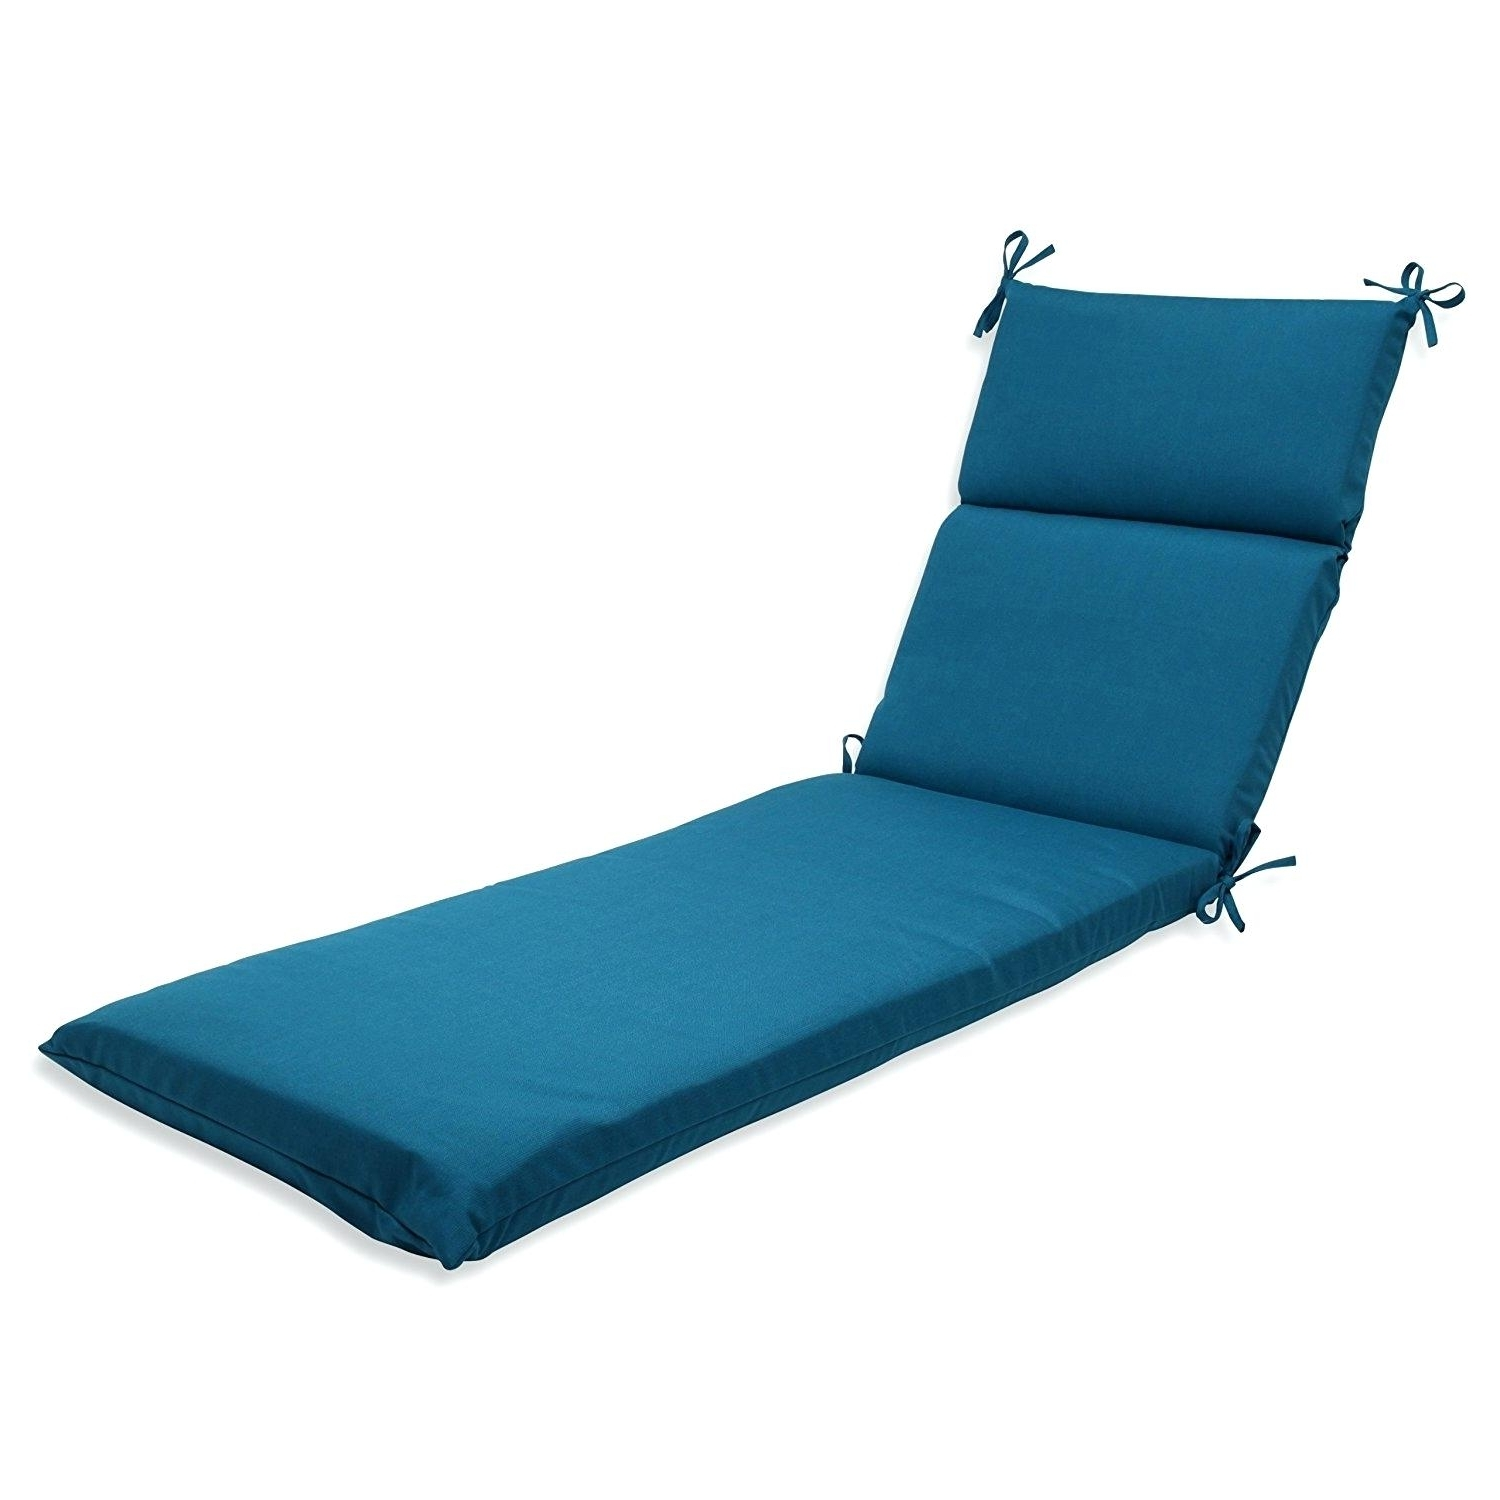 Outdoor Chaise Lounge Covers Intended For Widely Used Outdoor Furniture Cushions Covers Awesome Ideas Blue Bay Gorgeous (View 15 of 15)